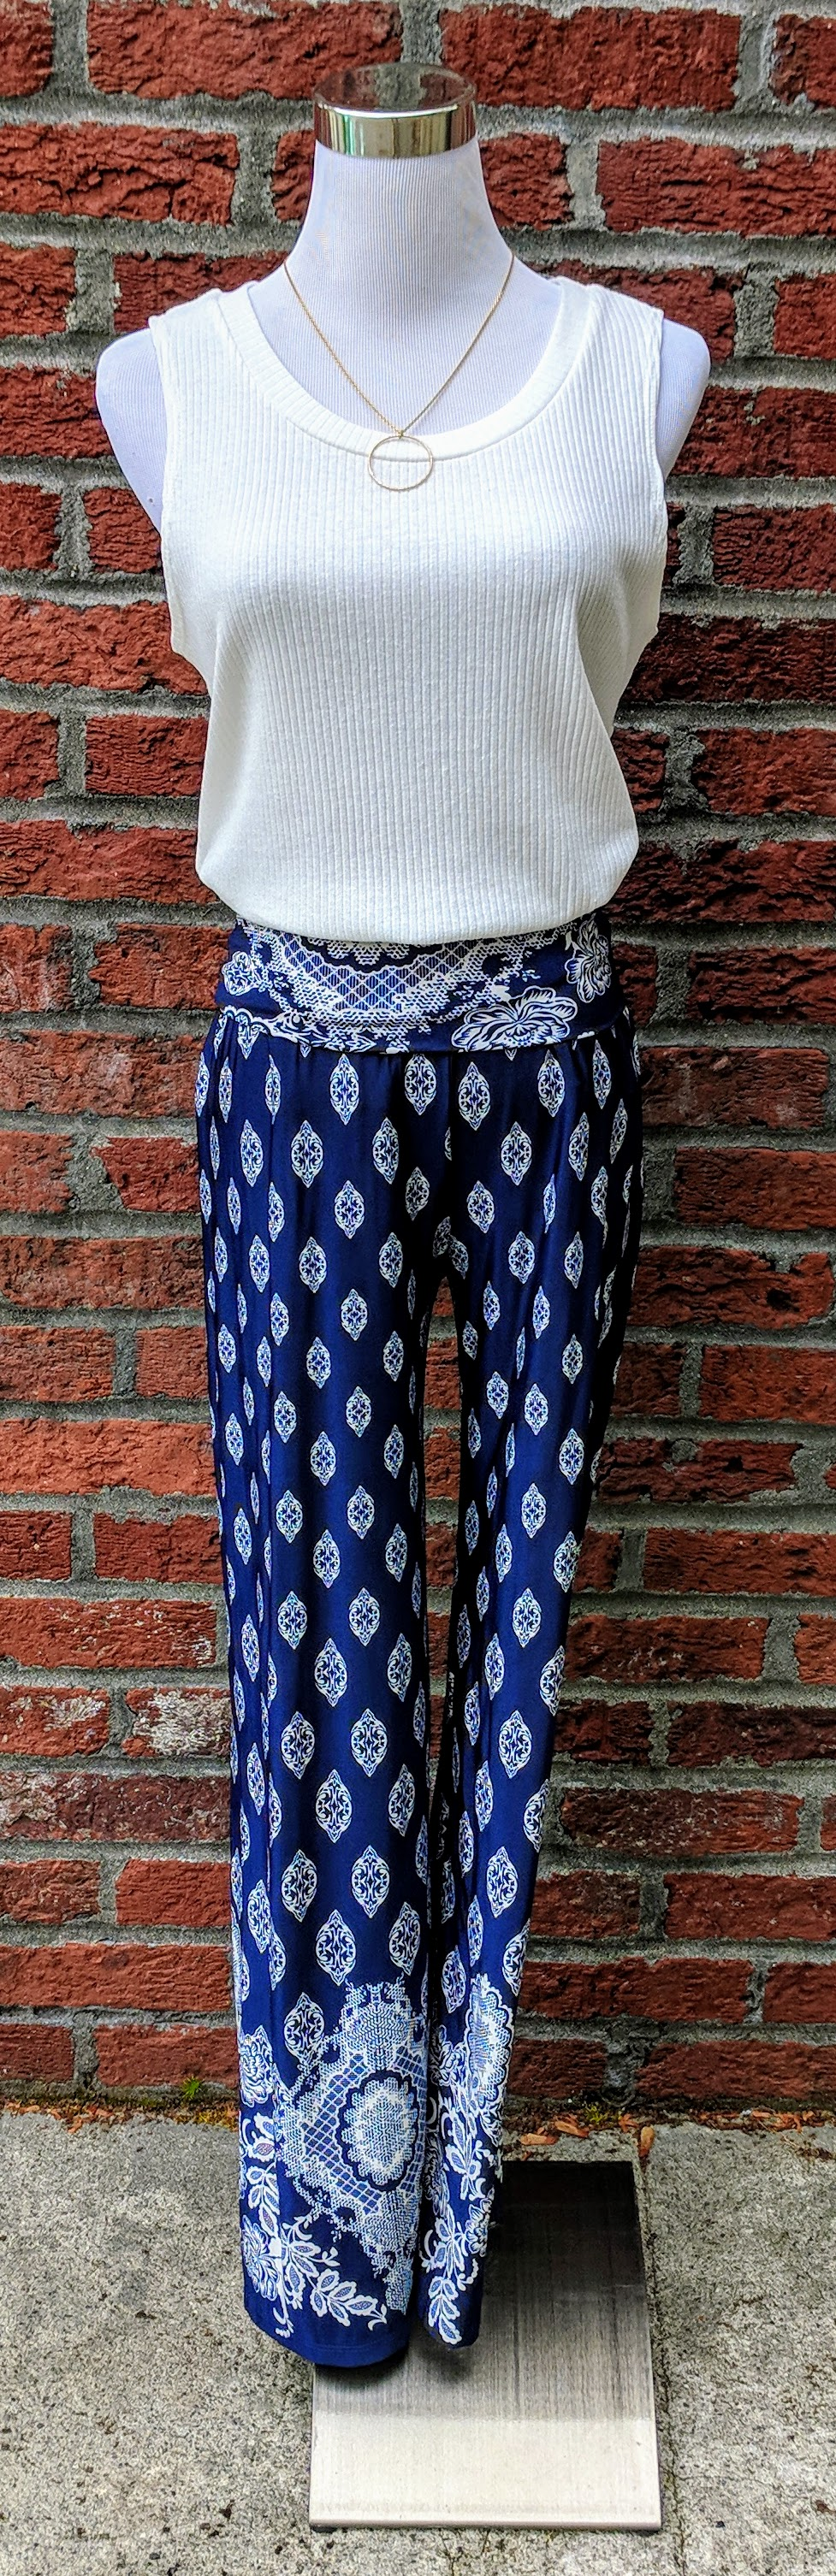 Navy and white flare palazzo pants with tribal print.